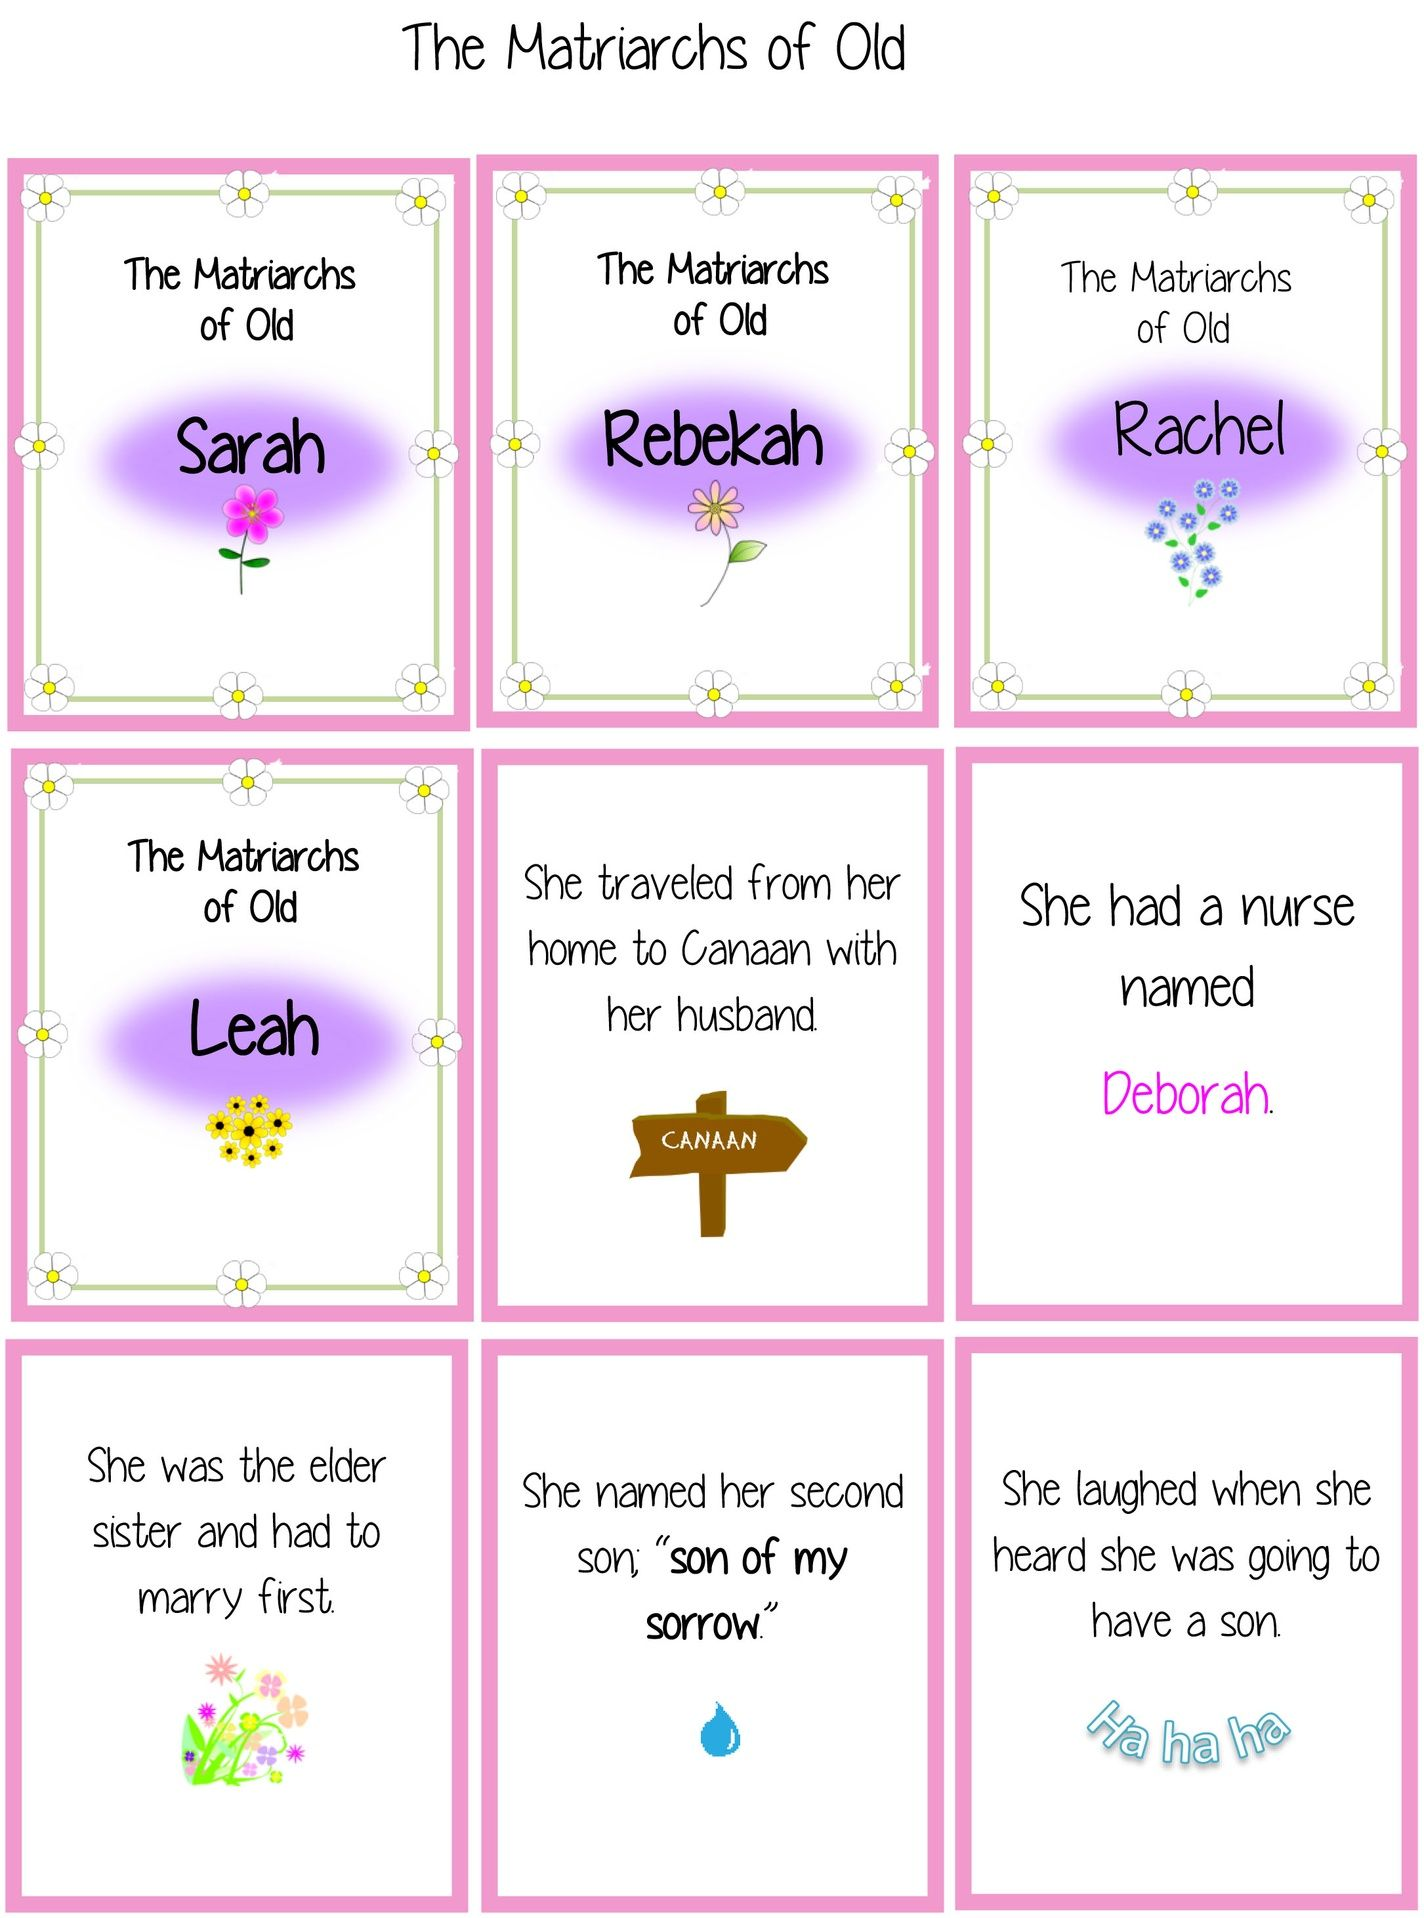 The Matriarchs of Old Bible Character matching game | Bible